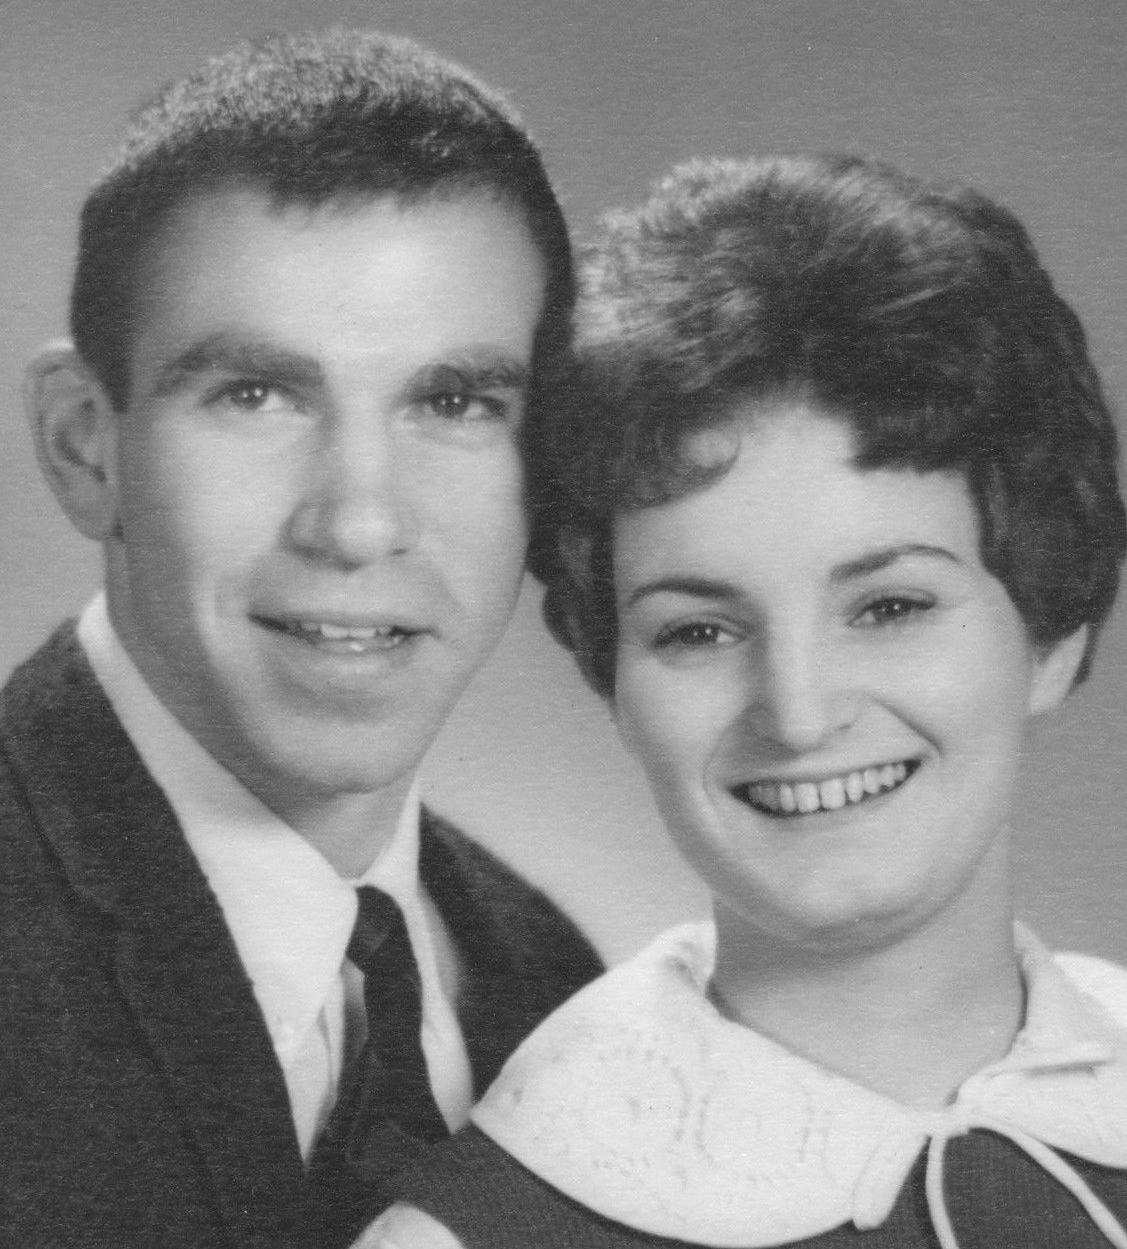 Jim and Vickie Woodworth